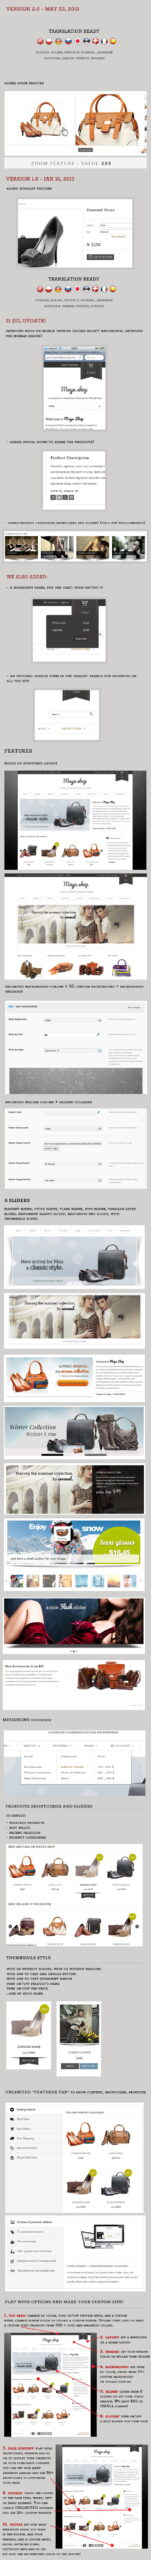 MayaShop2 - MayaShop Responsive e-Commerce Shop Theme